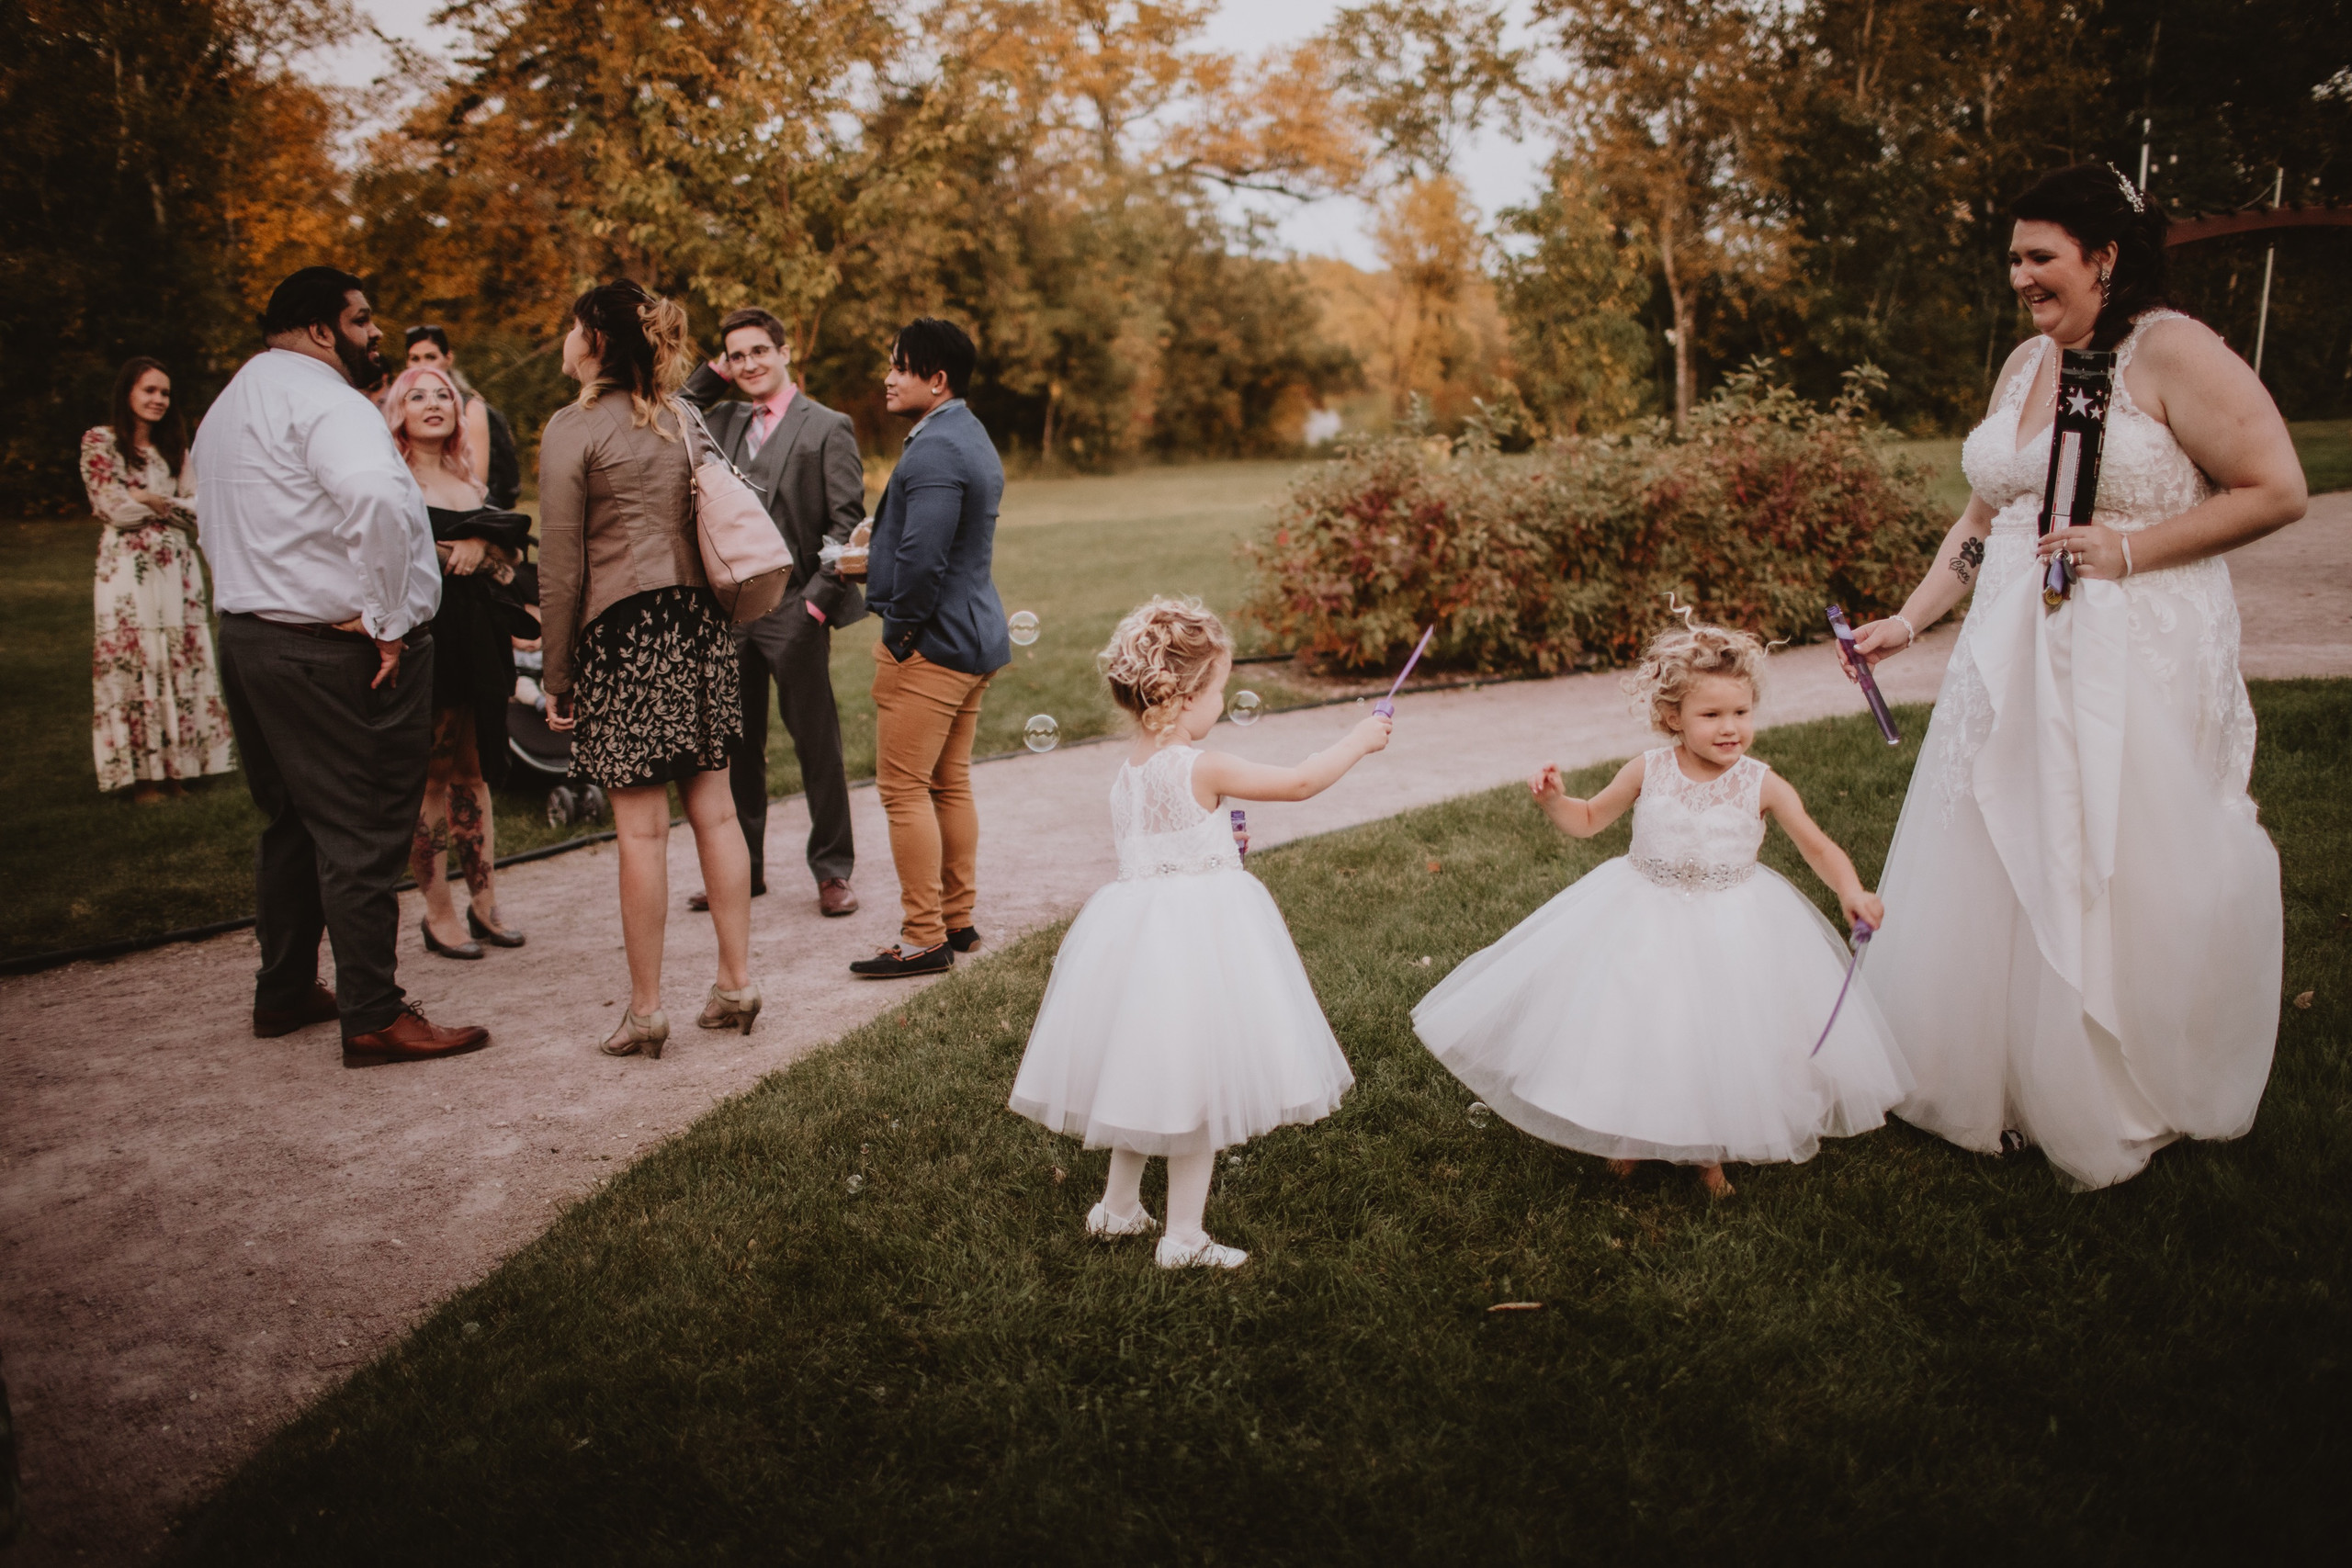 Flower Girls play with bubbles during wedding reception.